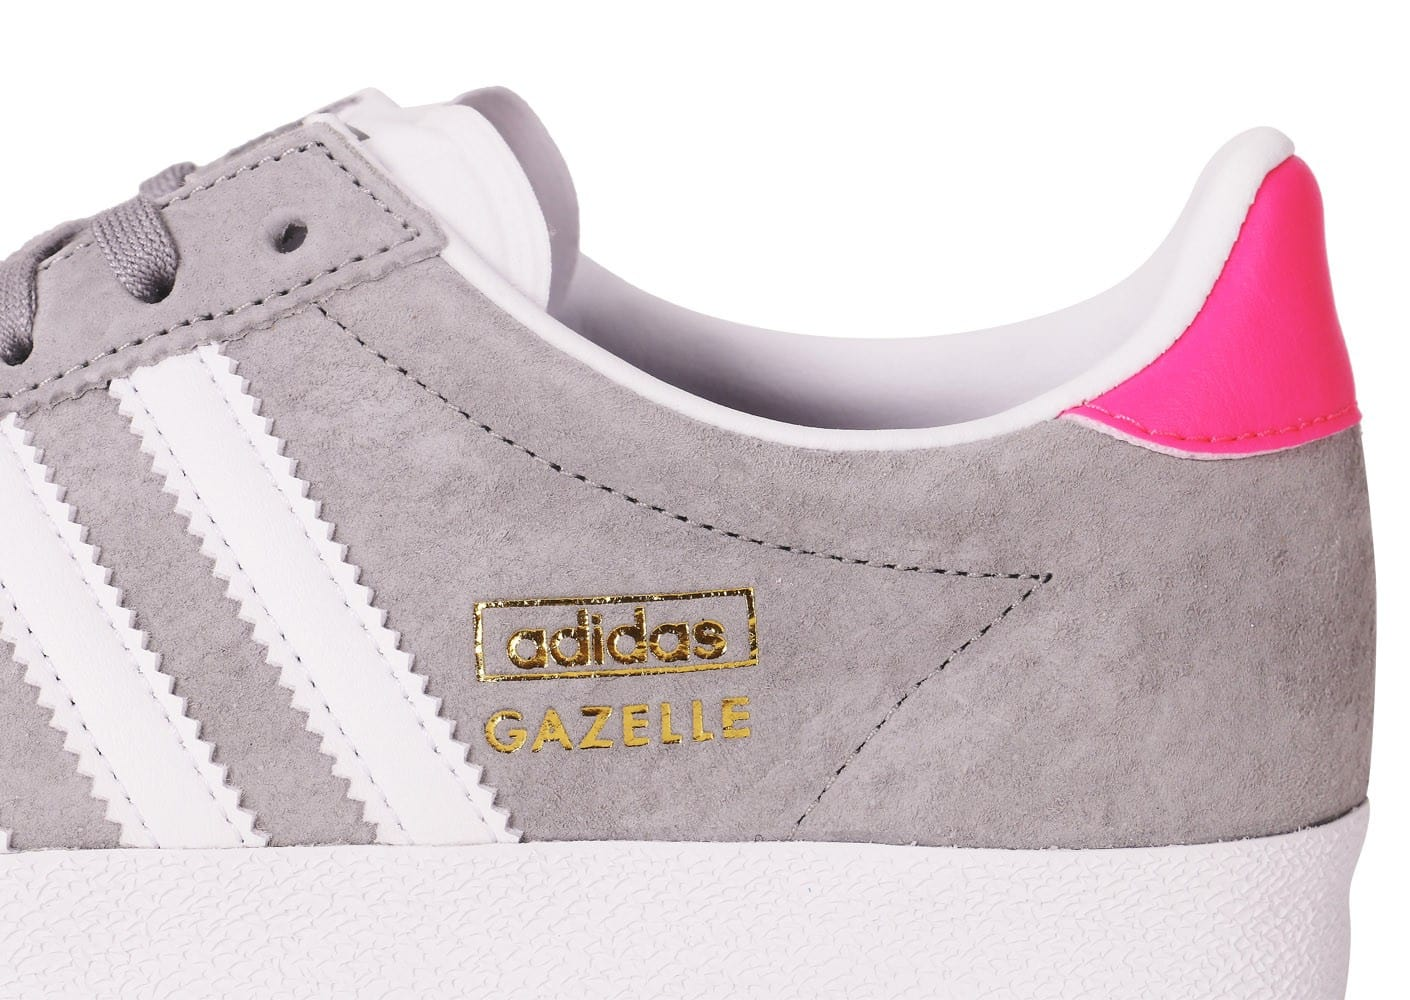 adidas Gazelle OG grise et rose - Chaussures adidas - Chausport